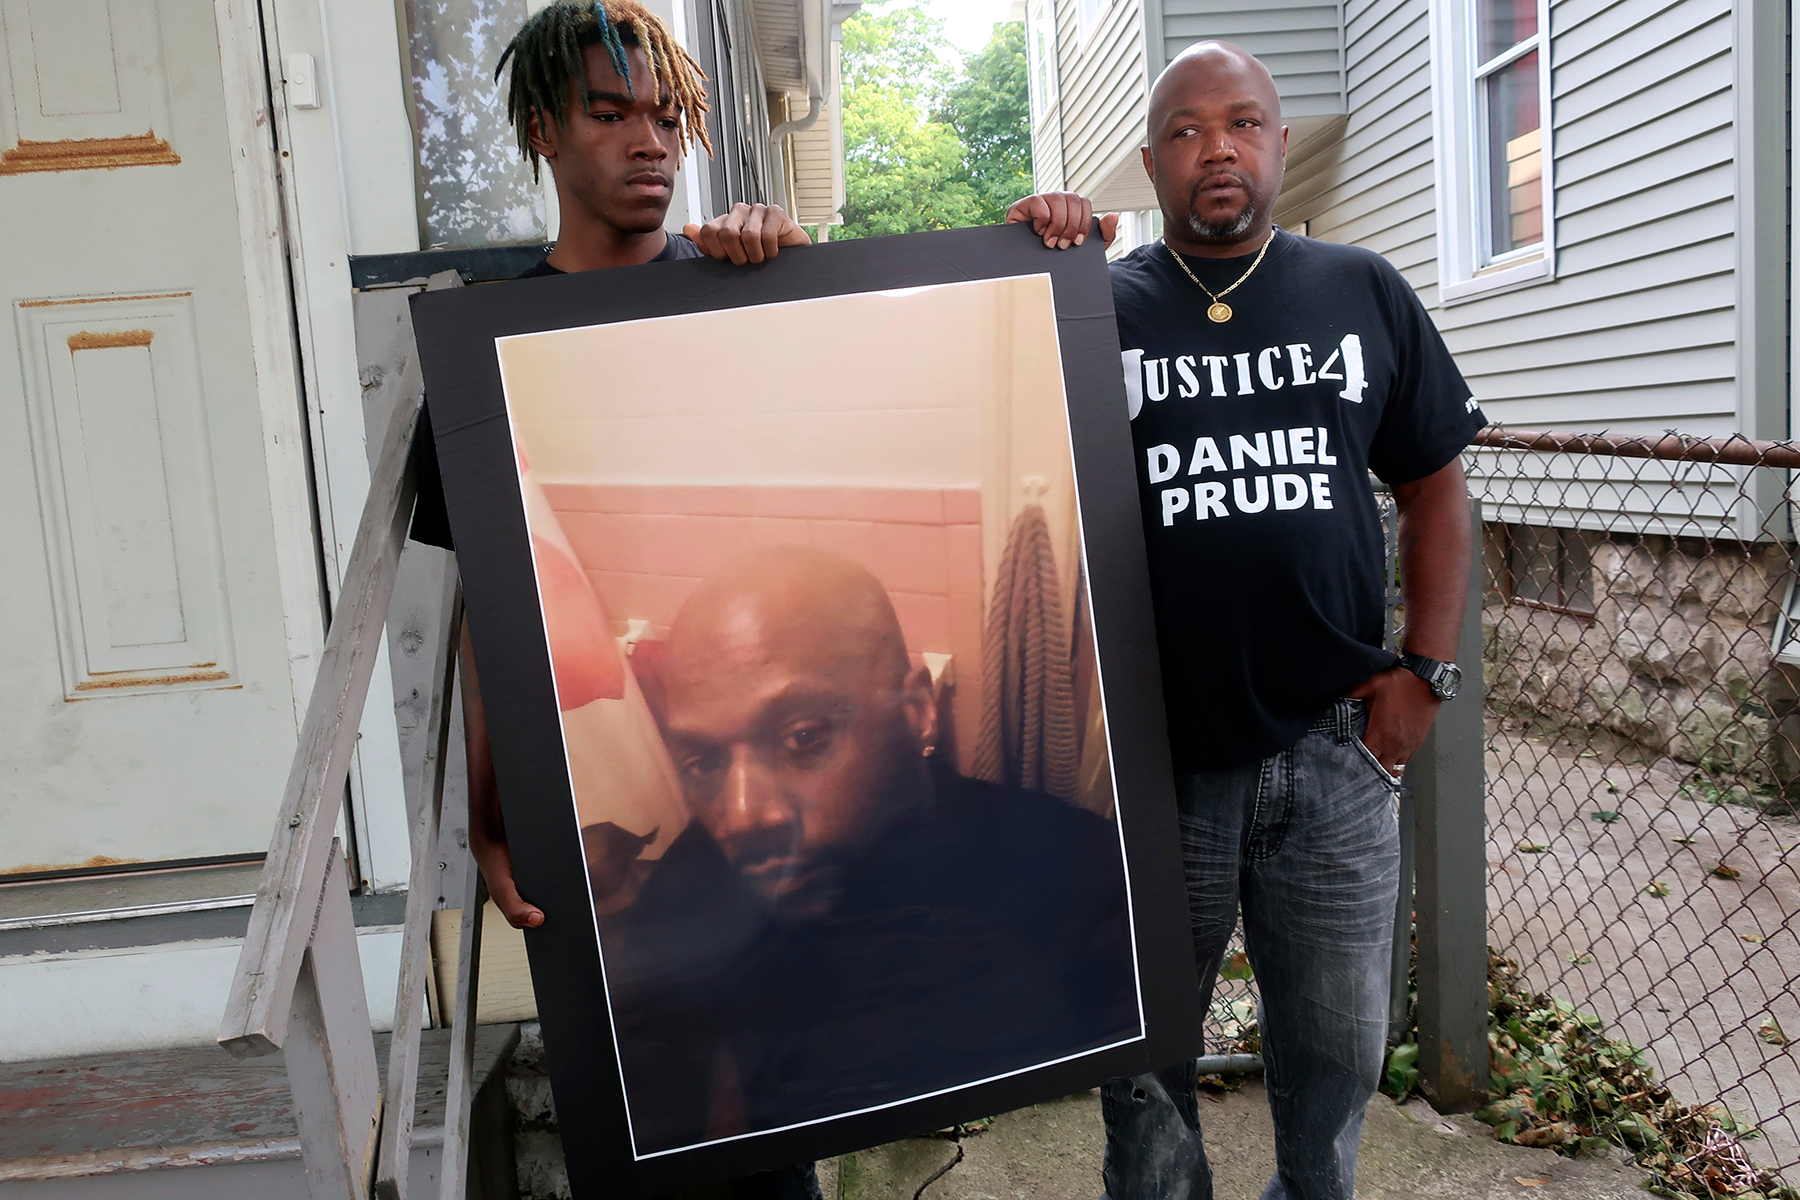 Rochester Police Won't Face Charges in Arrest Tied to Death of Daniel Prude